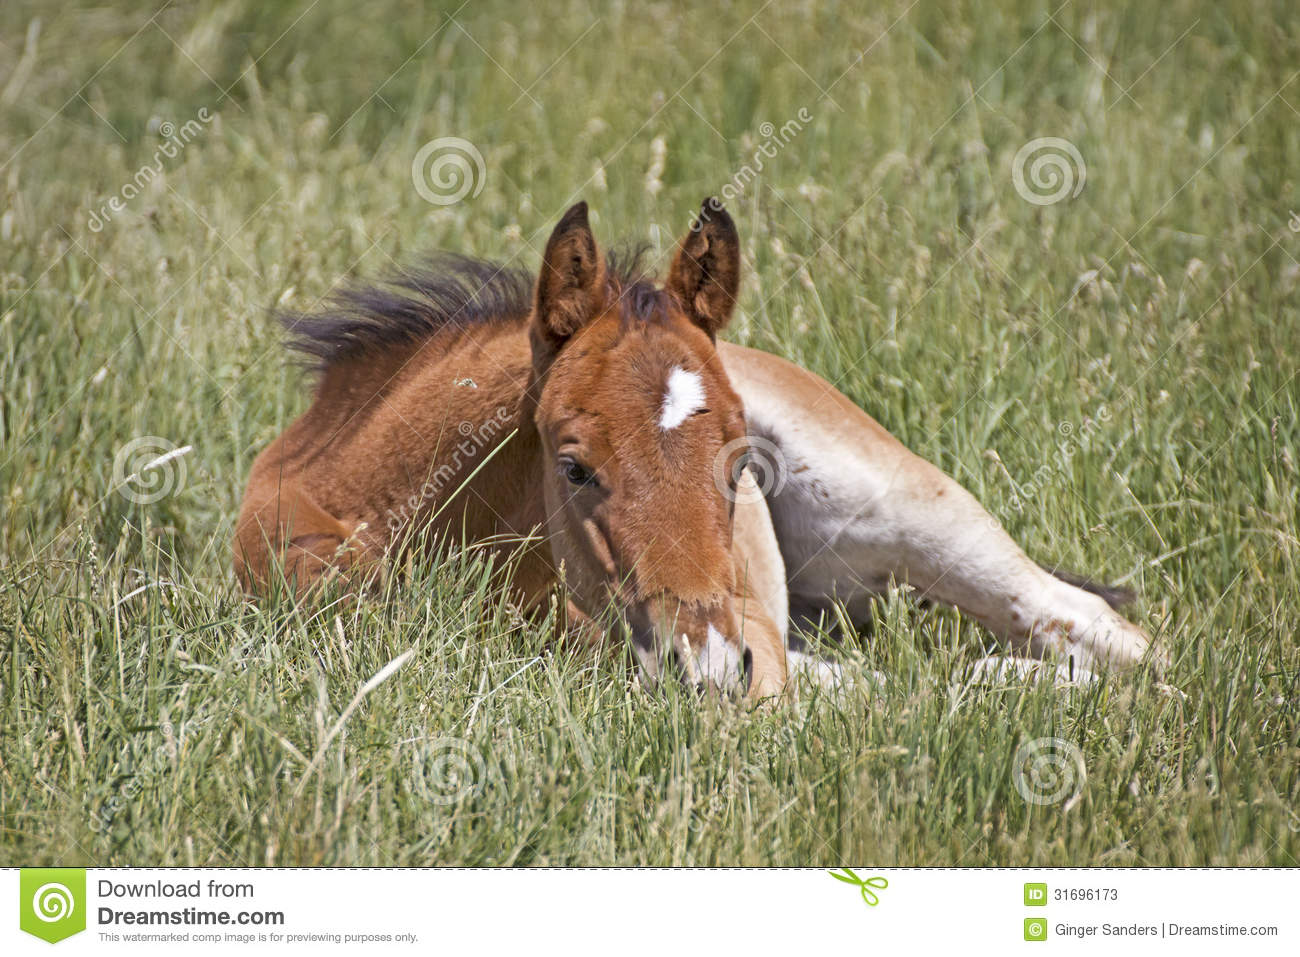 Little Brown Baby Horse Sleeping In Grass Stock Image Image Of Horse Space 31696173